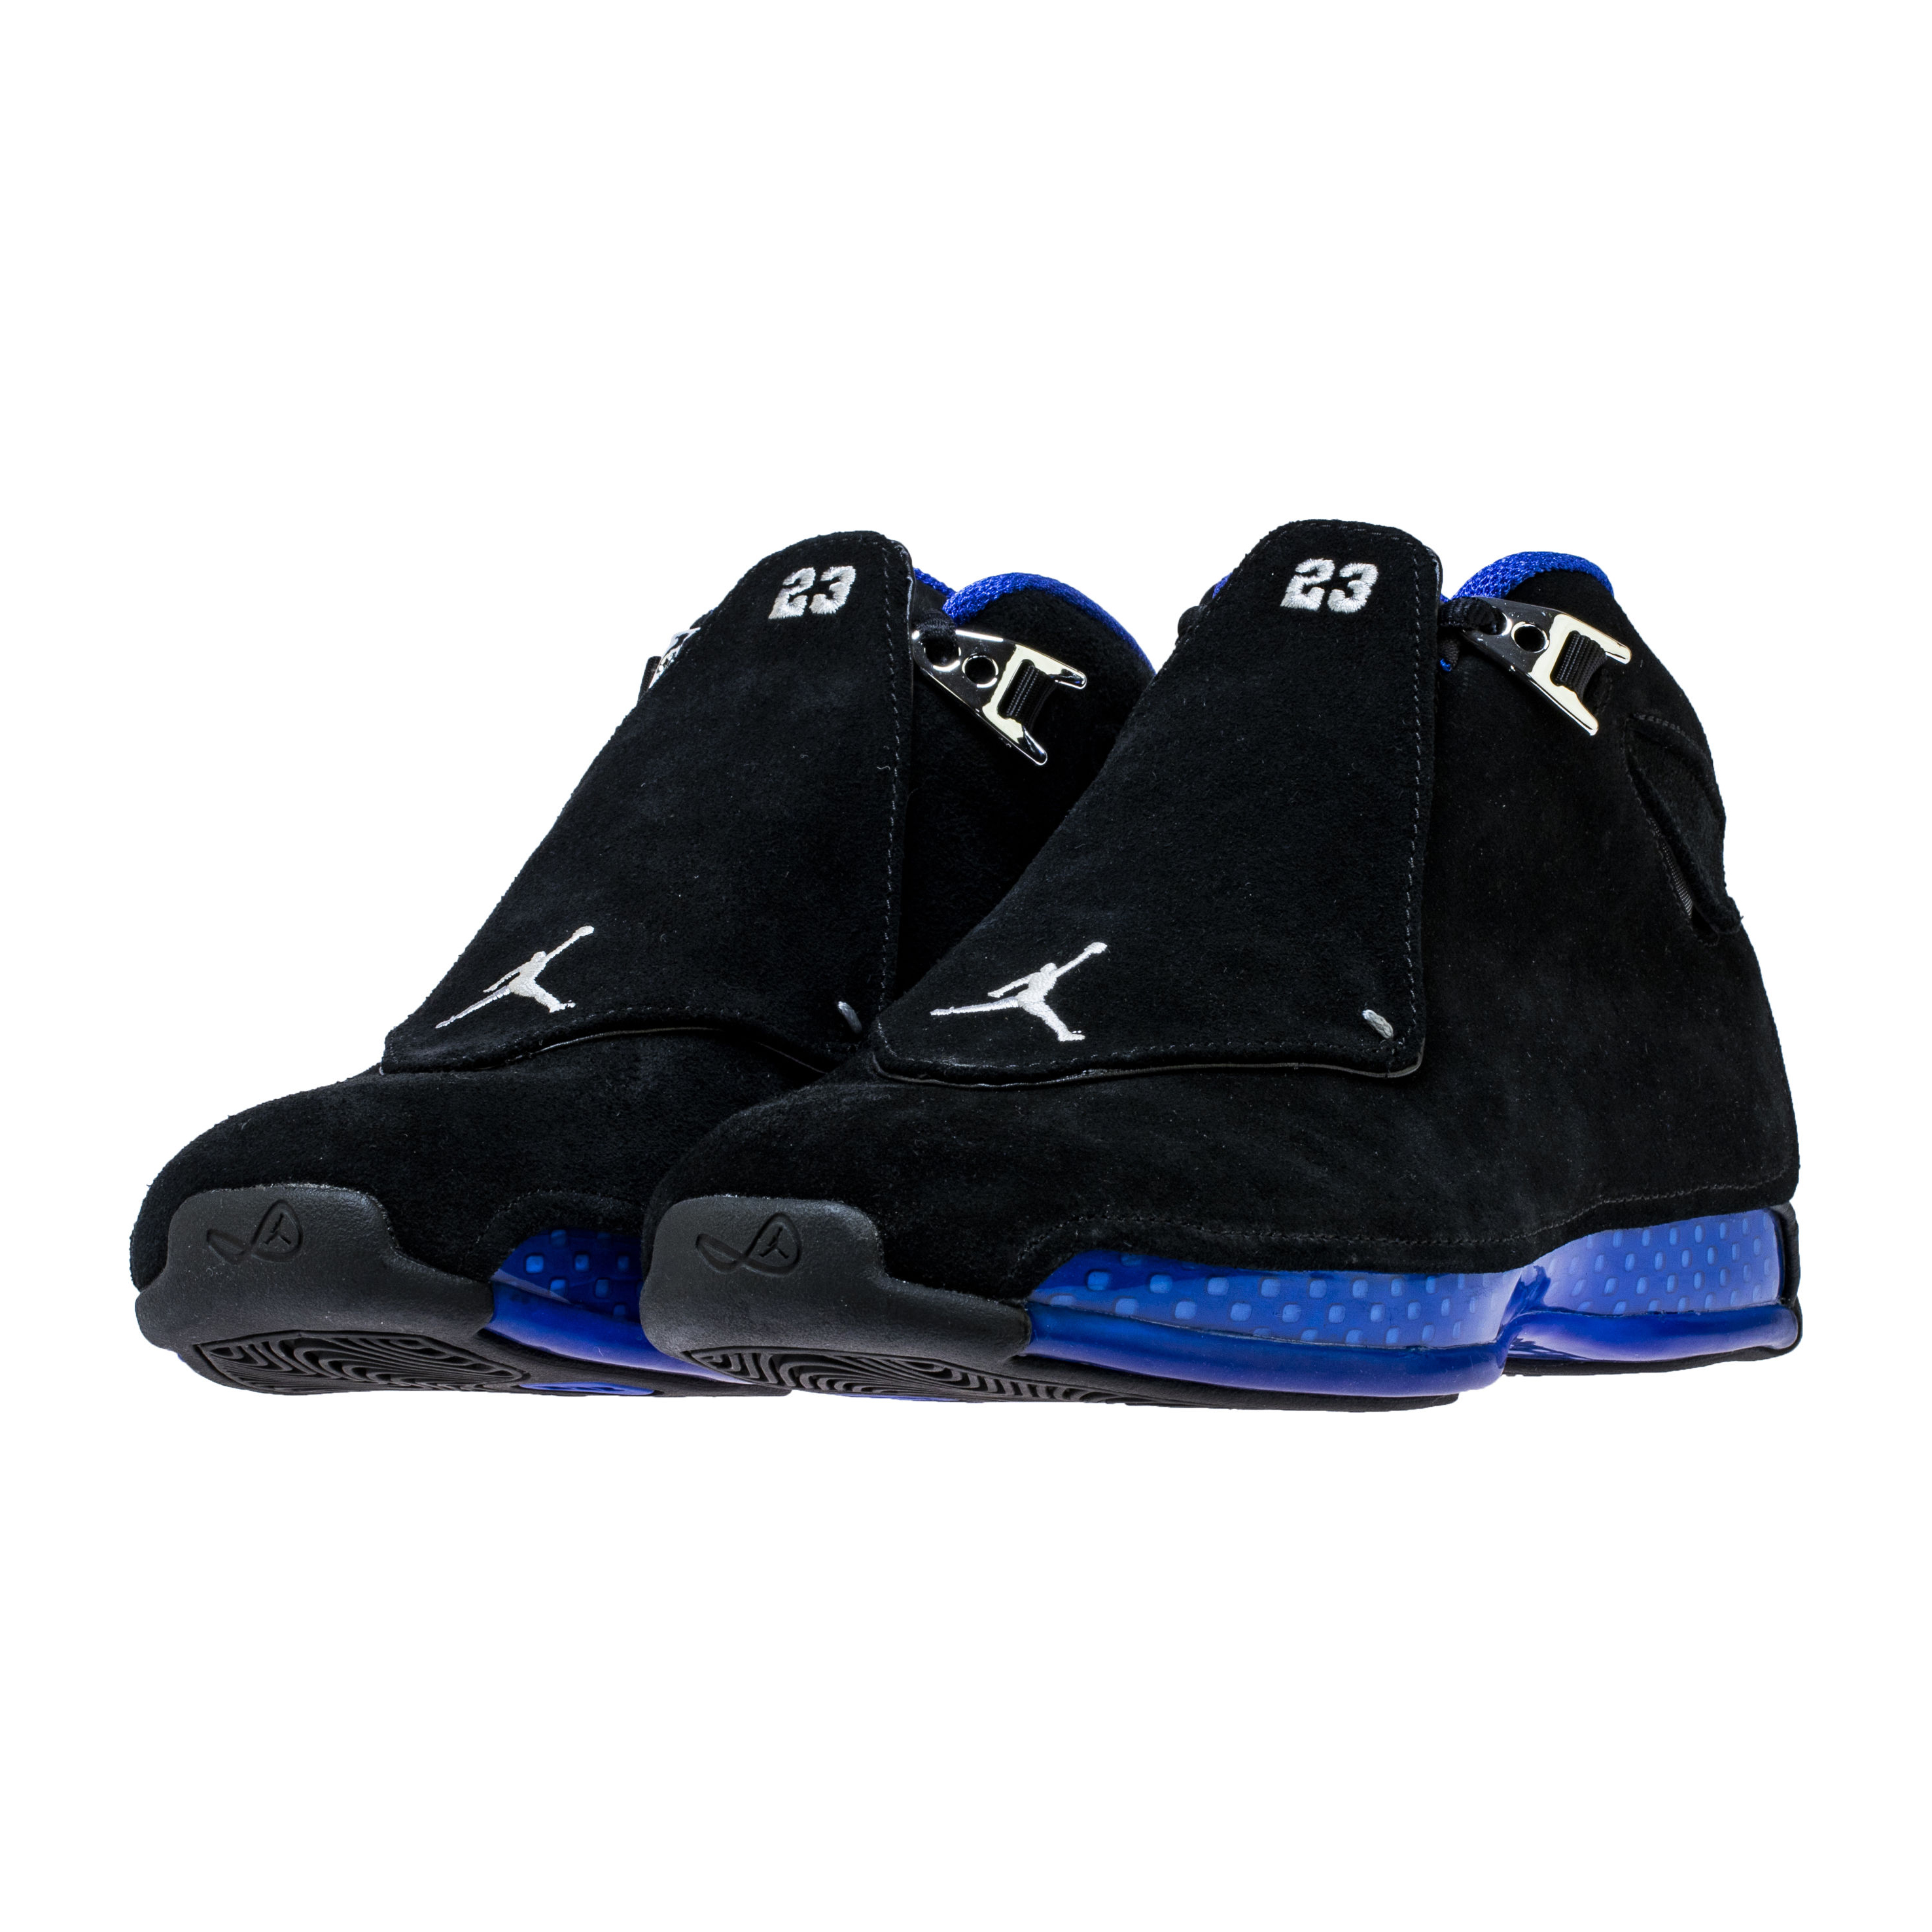 cb3bca06491 The Air Jordan 18 'Black Sport Royal' Release Date Has Been Moved Up ...